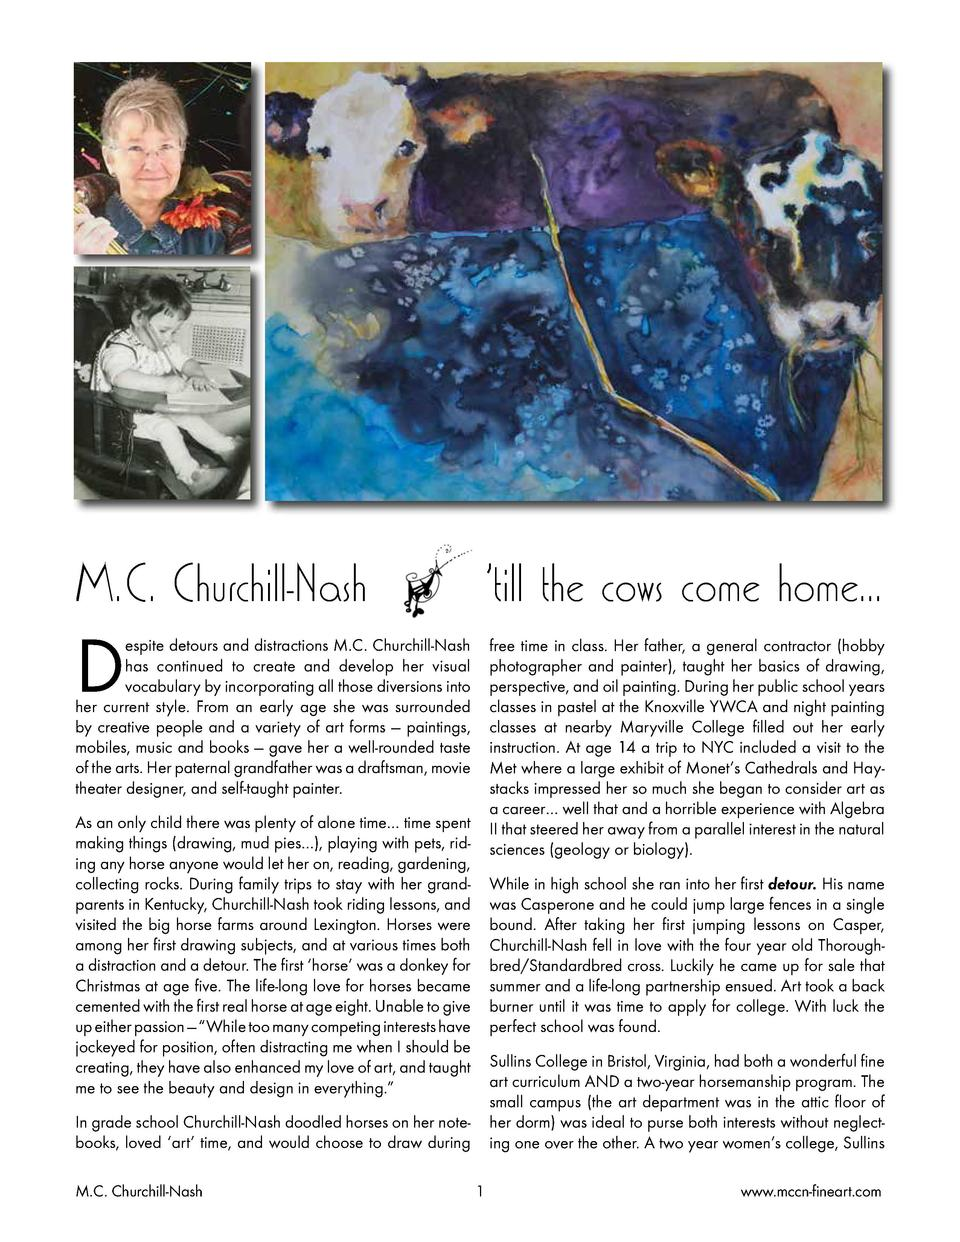 M.C. Churchill-Nash     till the cows come home...  D  espite detours and distractions M.C. Churchill-Nash has continued t...